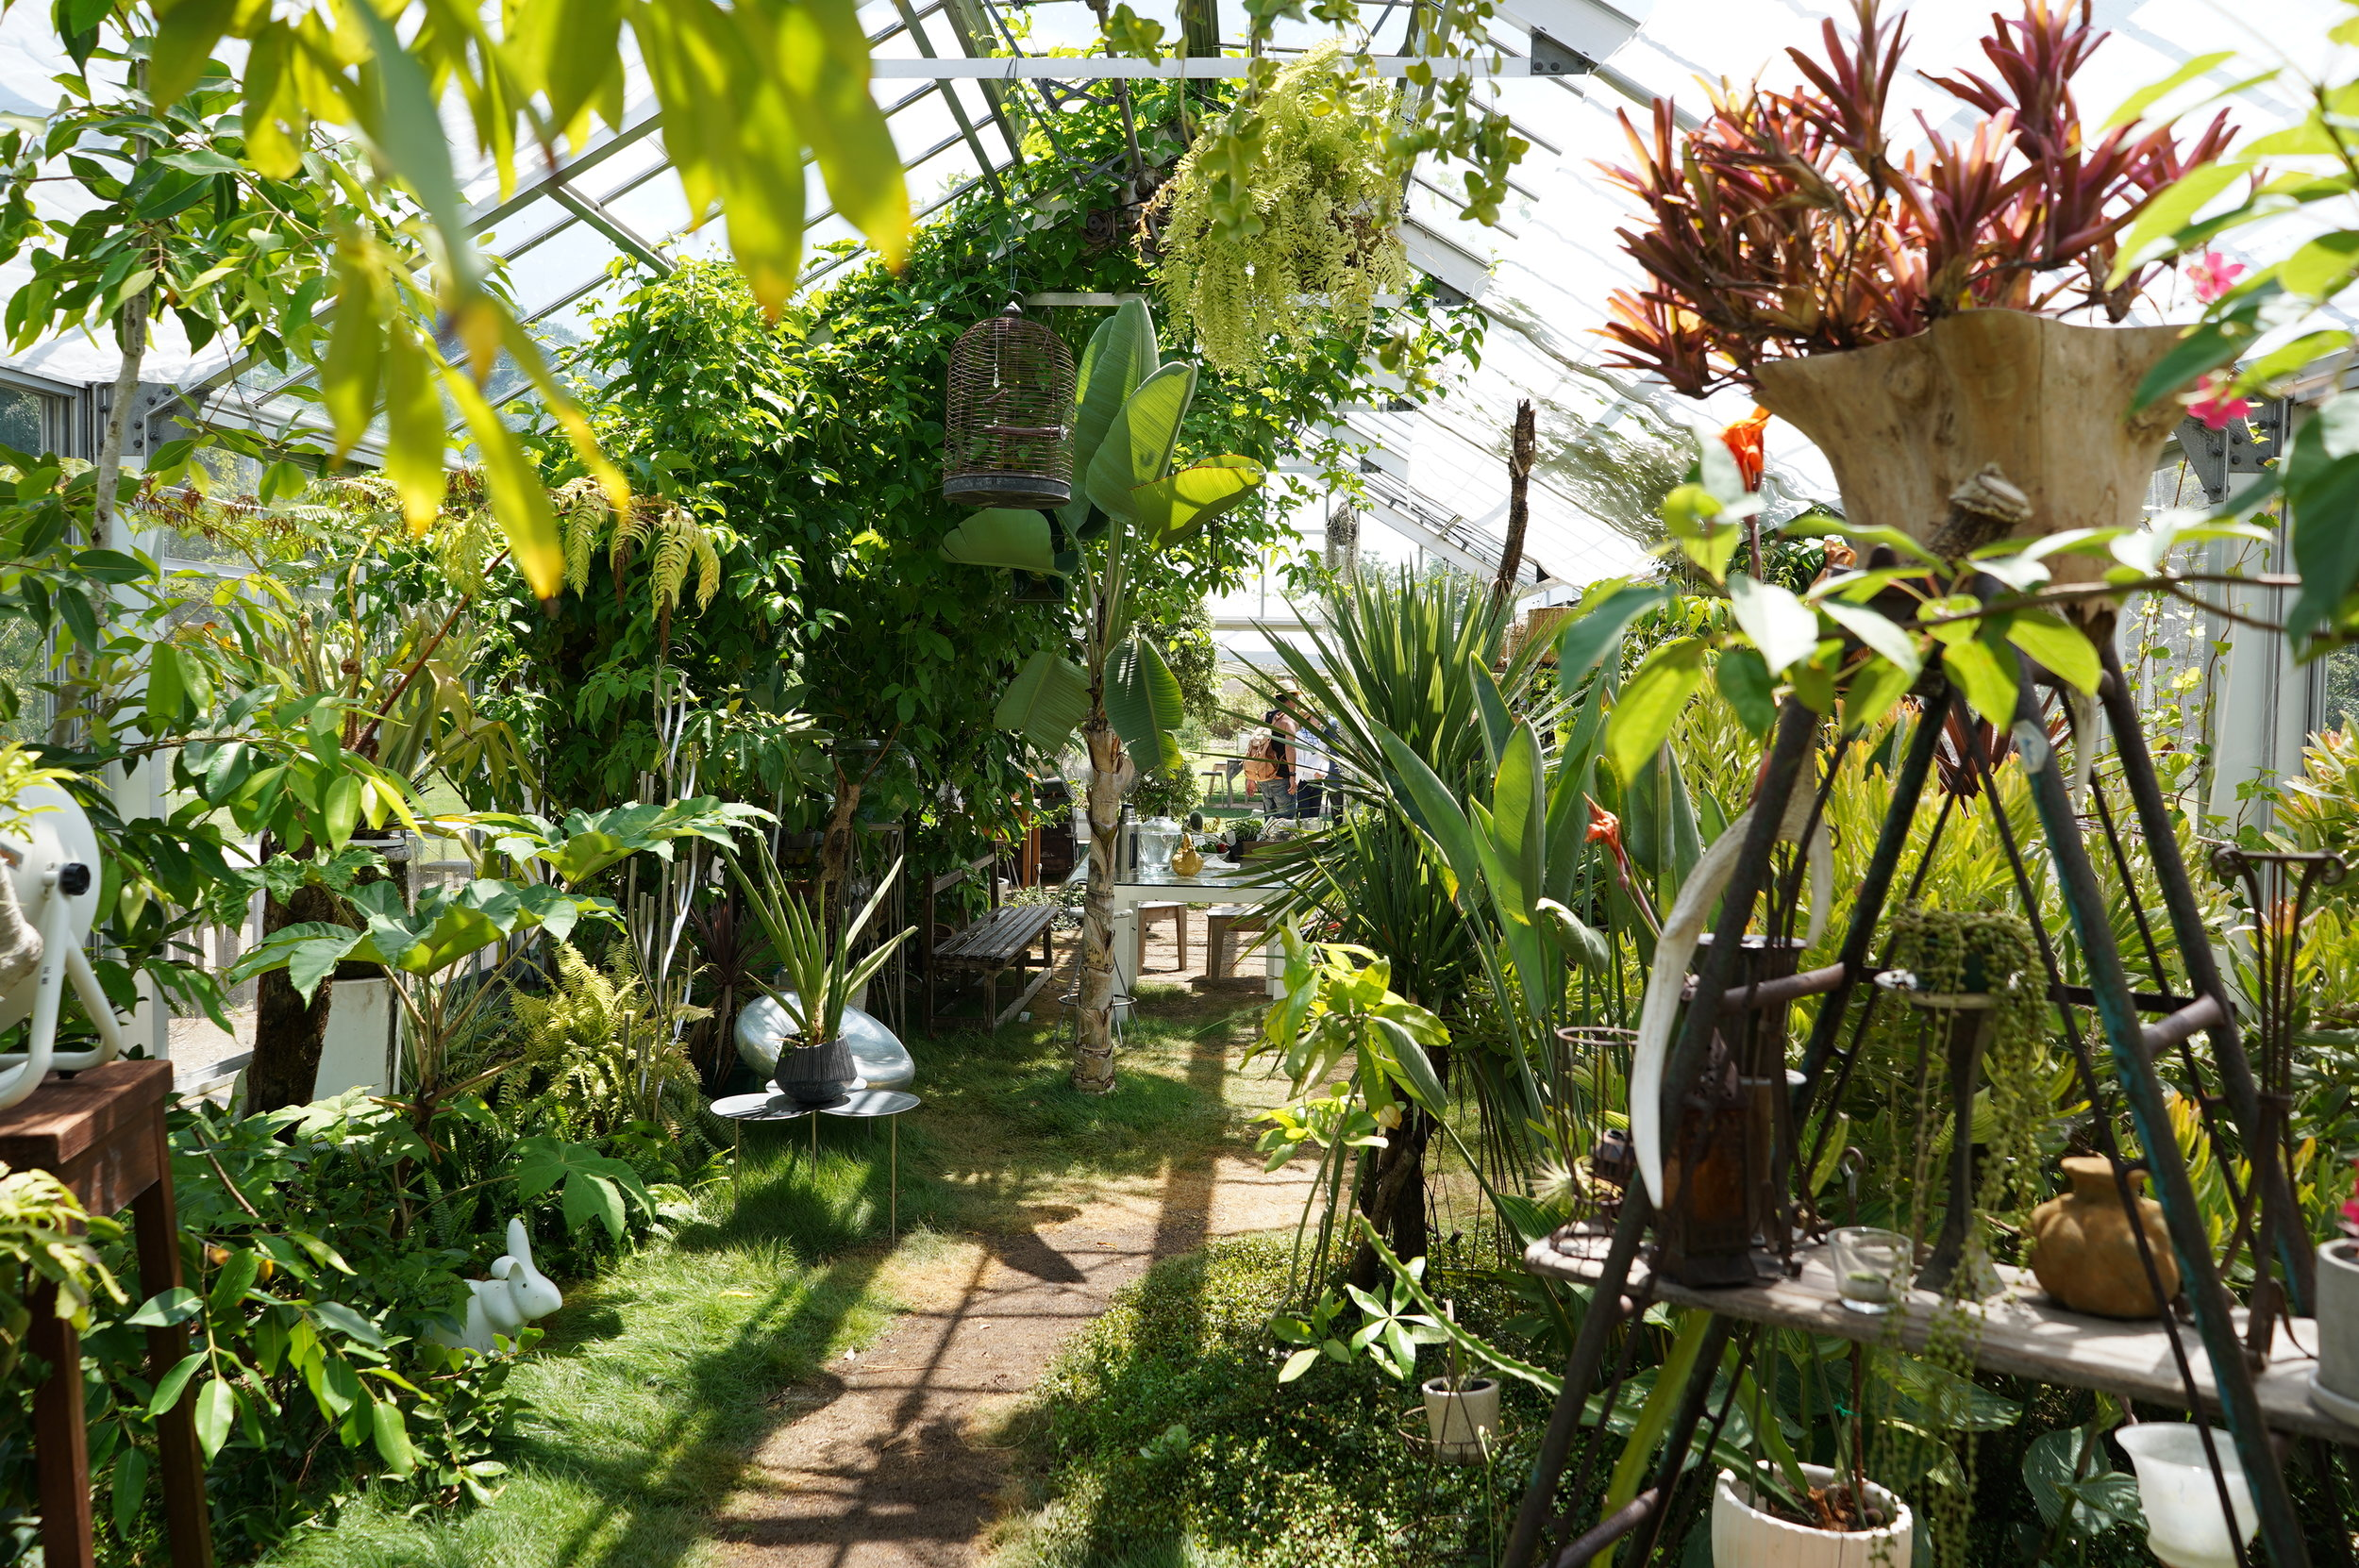 Inside the paradise greenhouse on Inujima. Photo by the author.